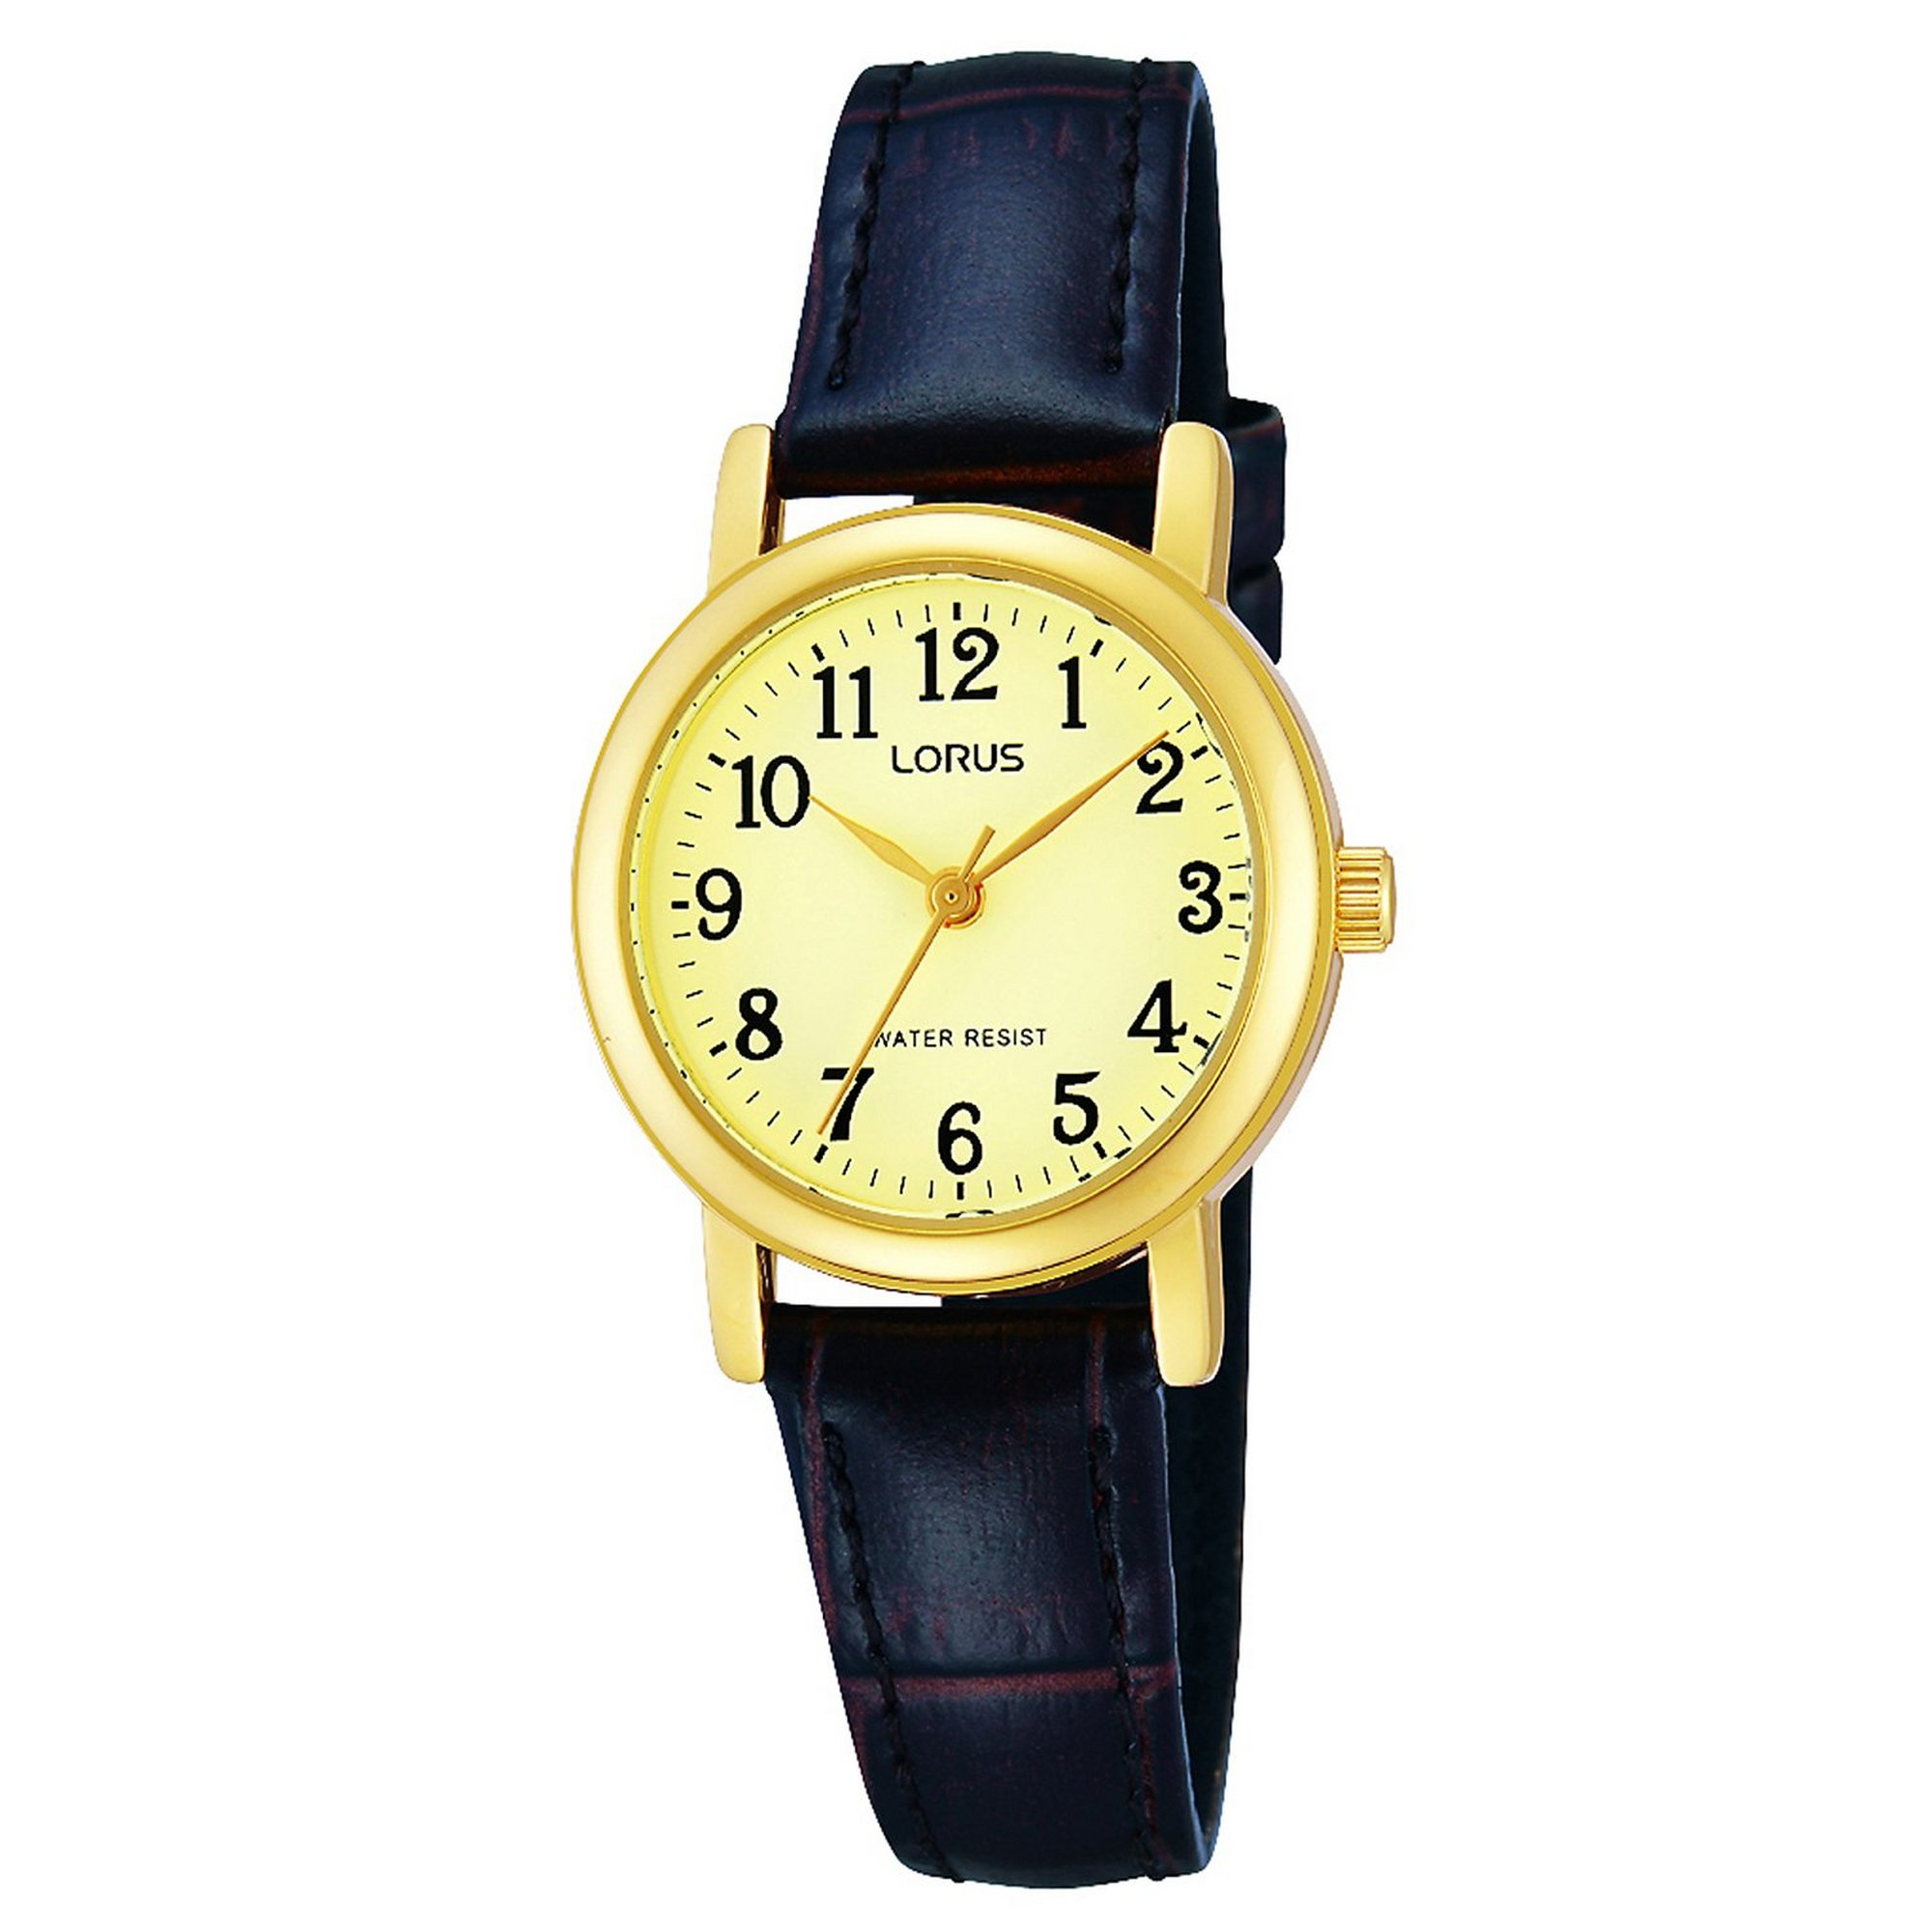 Image of Lorus Classic Watch with Clear Arabic Numerals and Second Hand